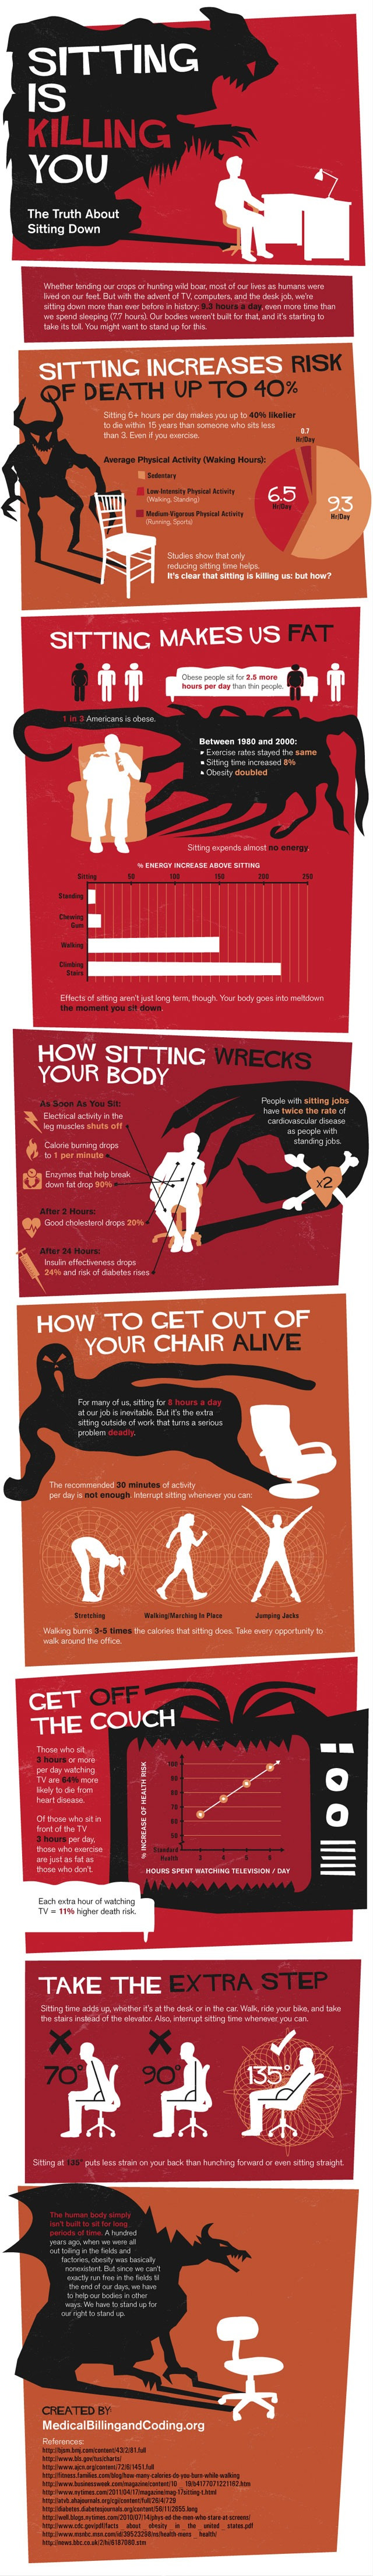 Sitting affects your body